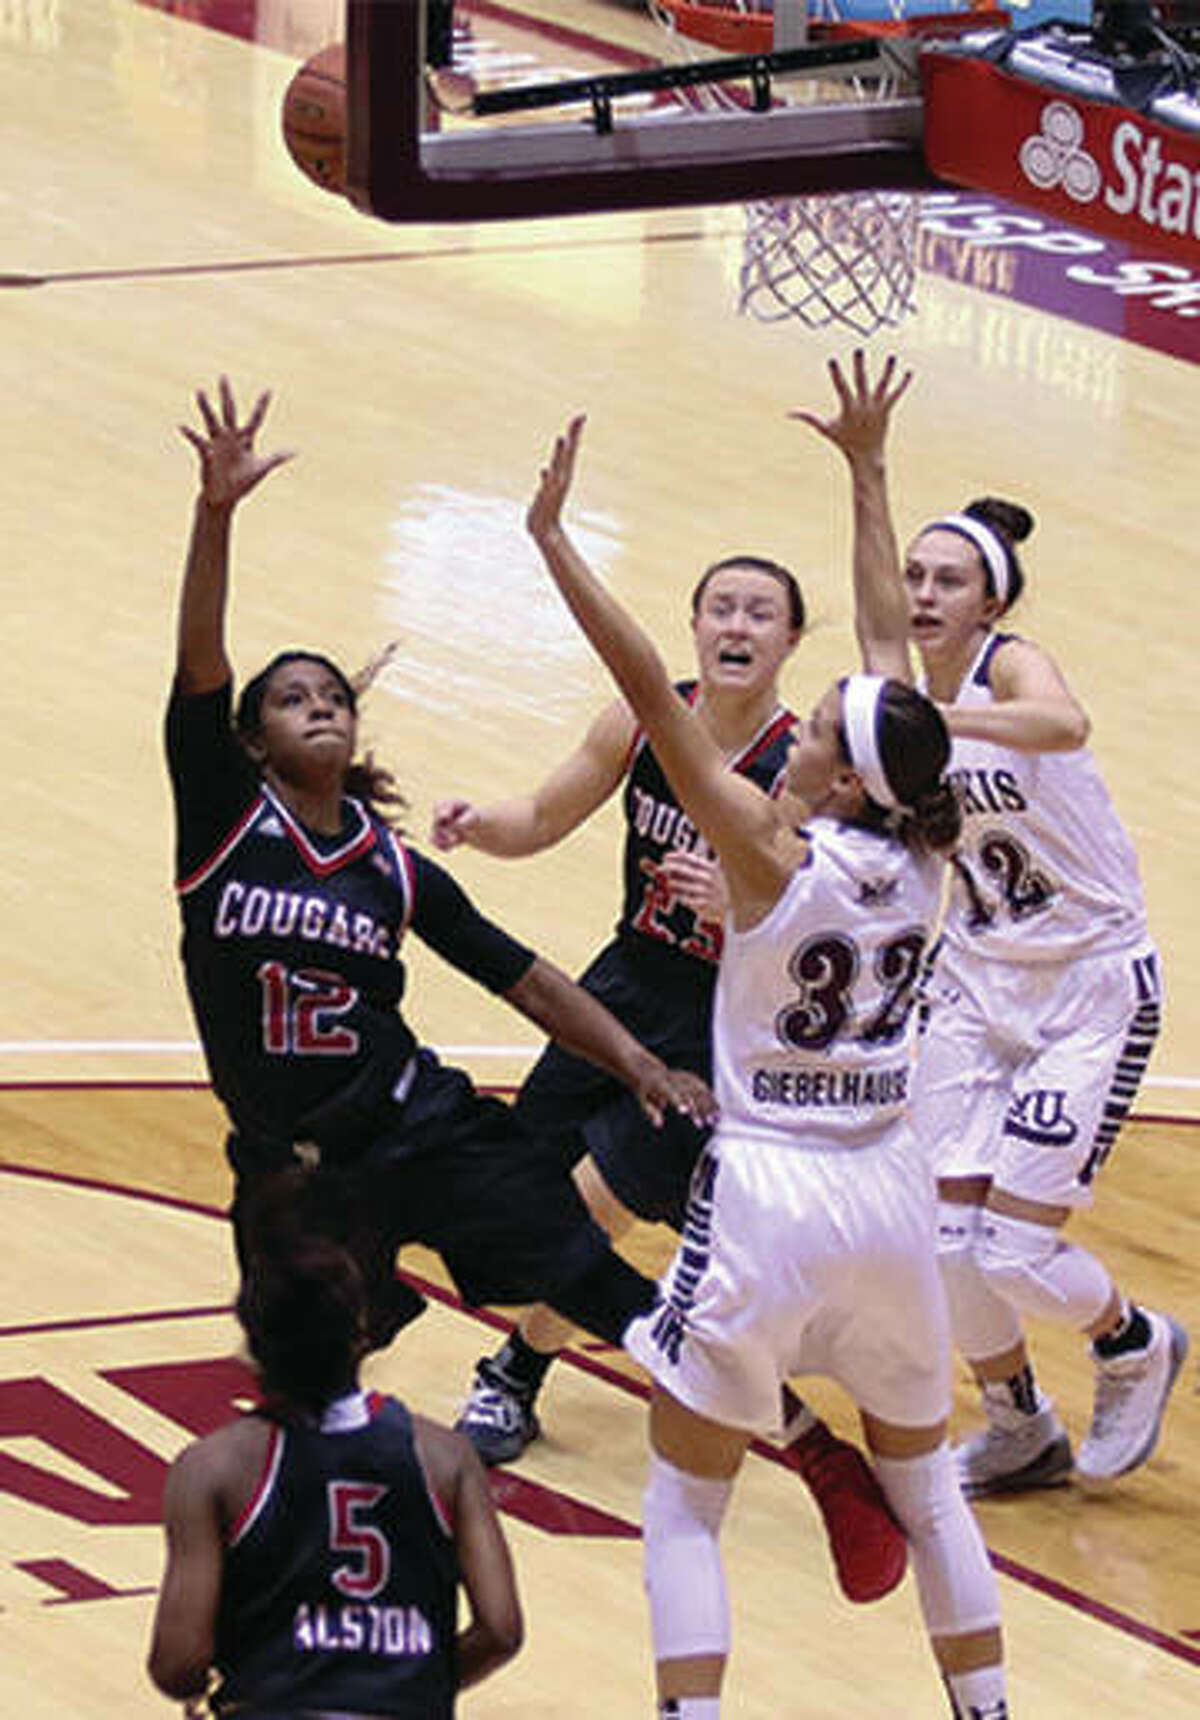 SIUE's Lauren White (12) puts up a shot over SIUC's Kylie Giebelhausen while SIUE's Allie Troeckler (middle, back) and SIUC's Makenzie Silvey watch the play Monday night at SIU Arena.